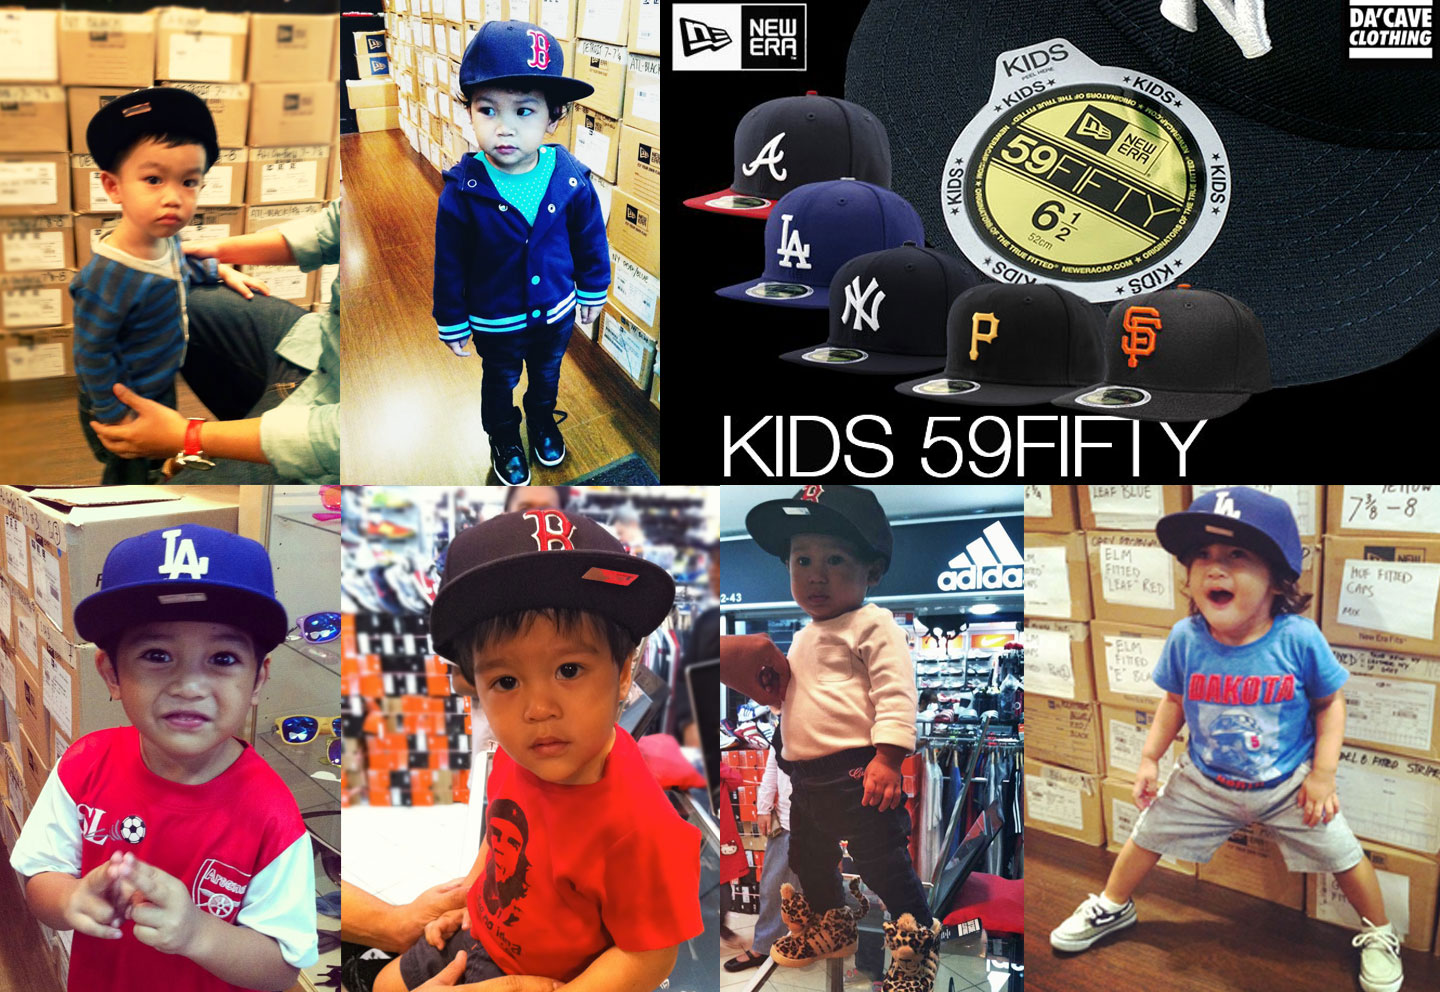 New Era On field cap 59fifty restocks at Dacave store  1f4f3cc6a56